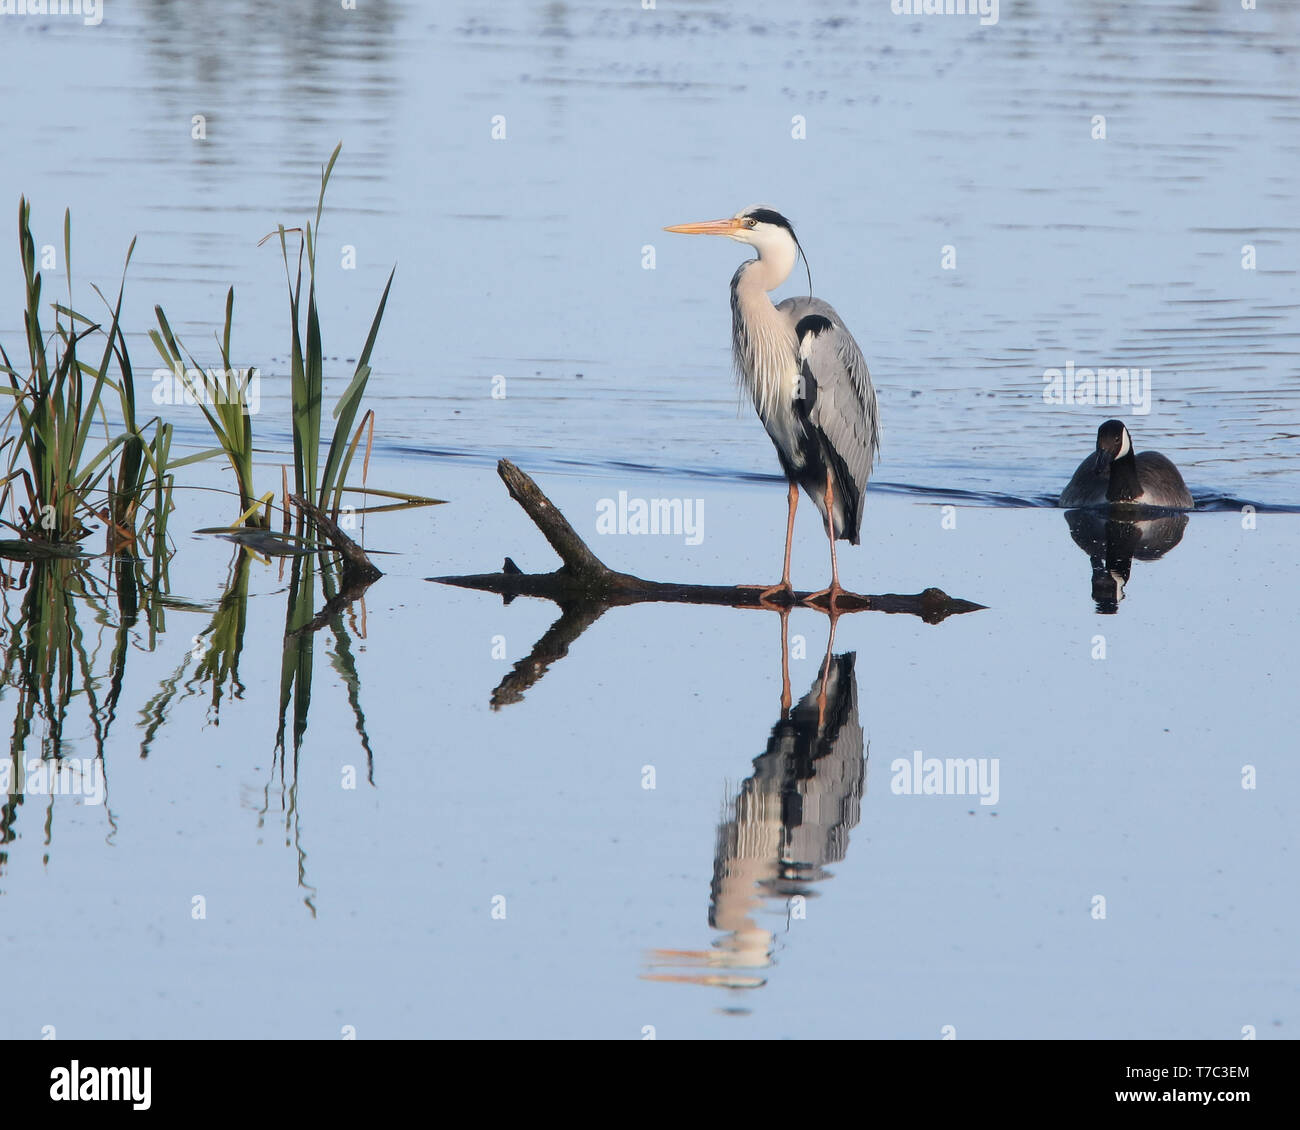 May 2019 - Reflections of a Grey Heron in rural Somerset, UK - Stock Image